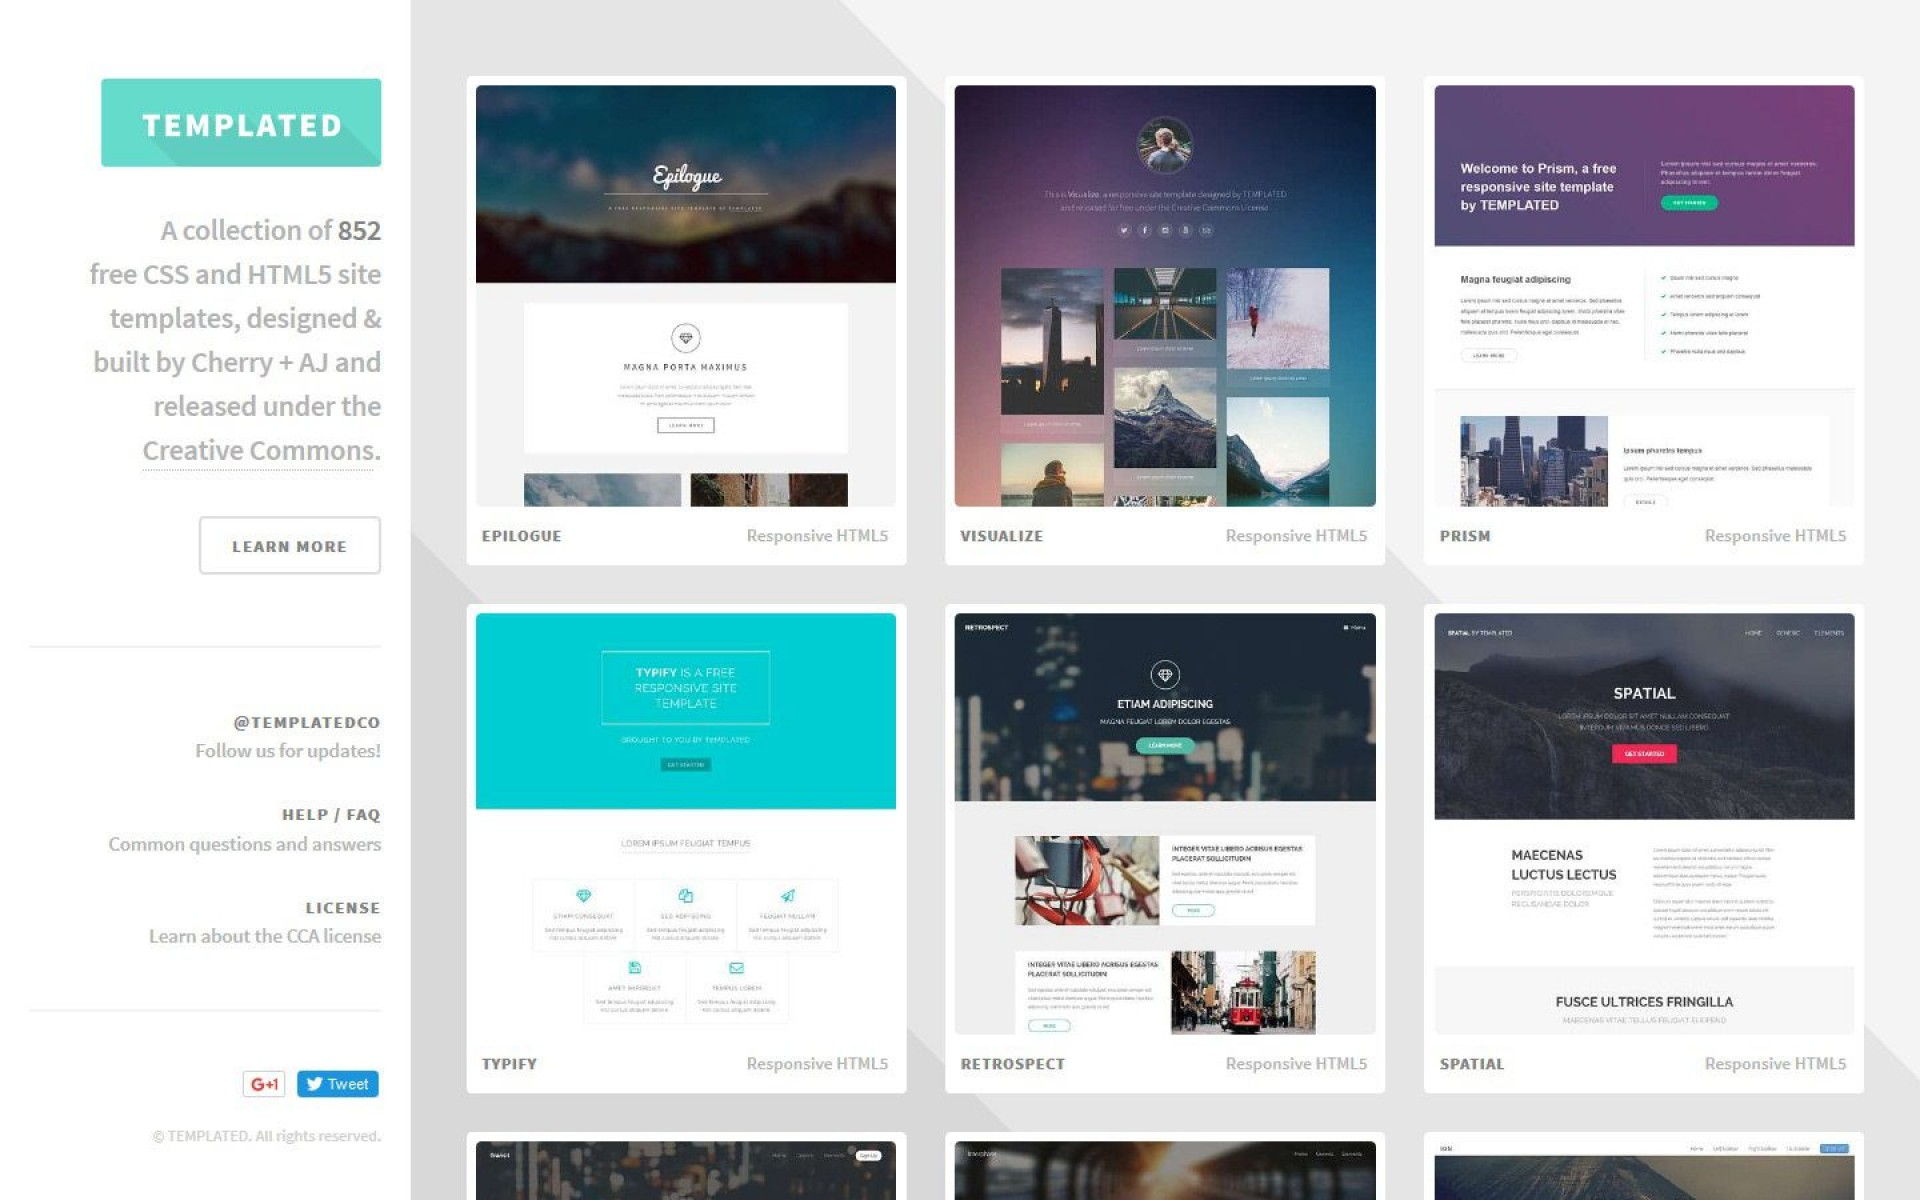 002 Archaicawful Free Web Template Download Html And Cs Example  Css Website Responsive Jquery For It Company1920